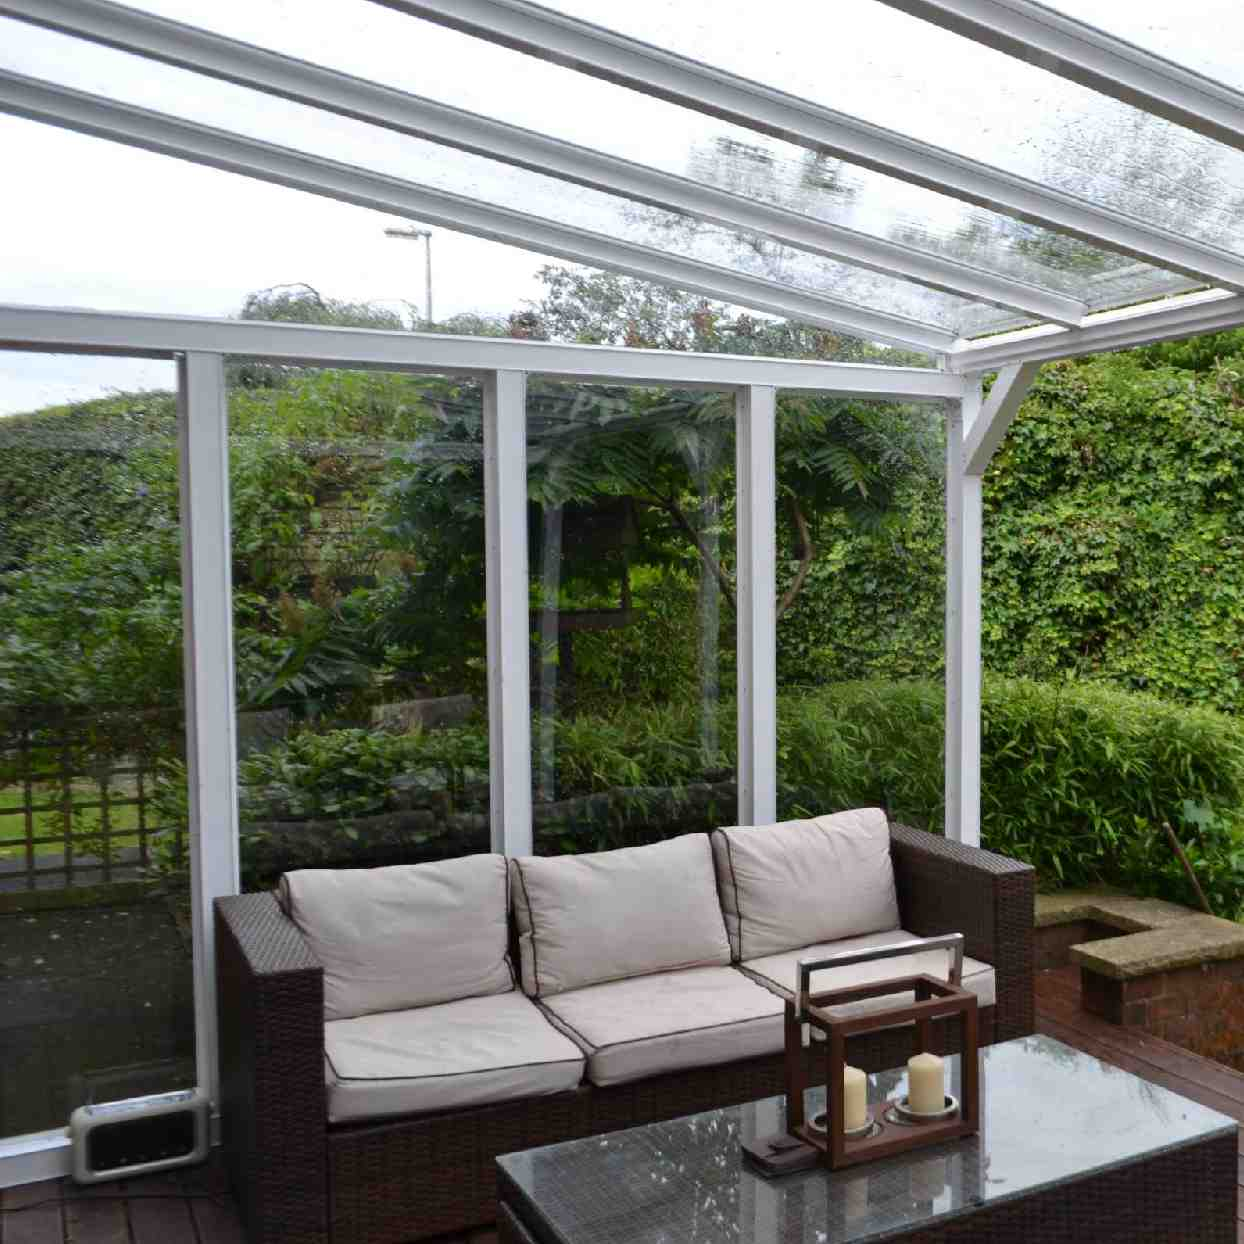 Buy Omega Verandah with 16mm Polycarbonate Glazing - 7.0m (W) x 4.0m (P), (4) Supporting Posts online today